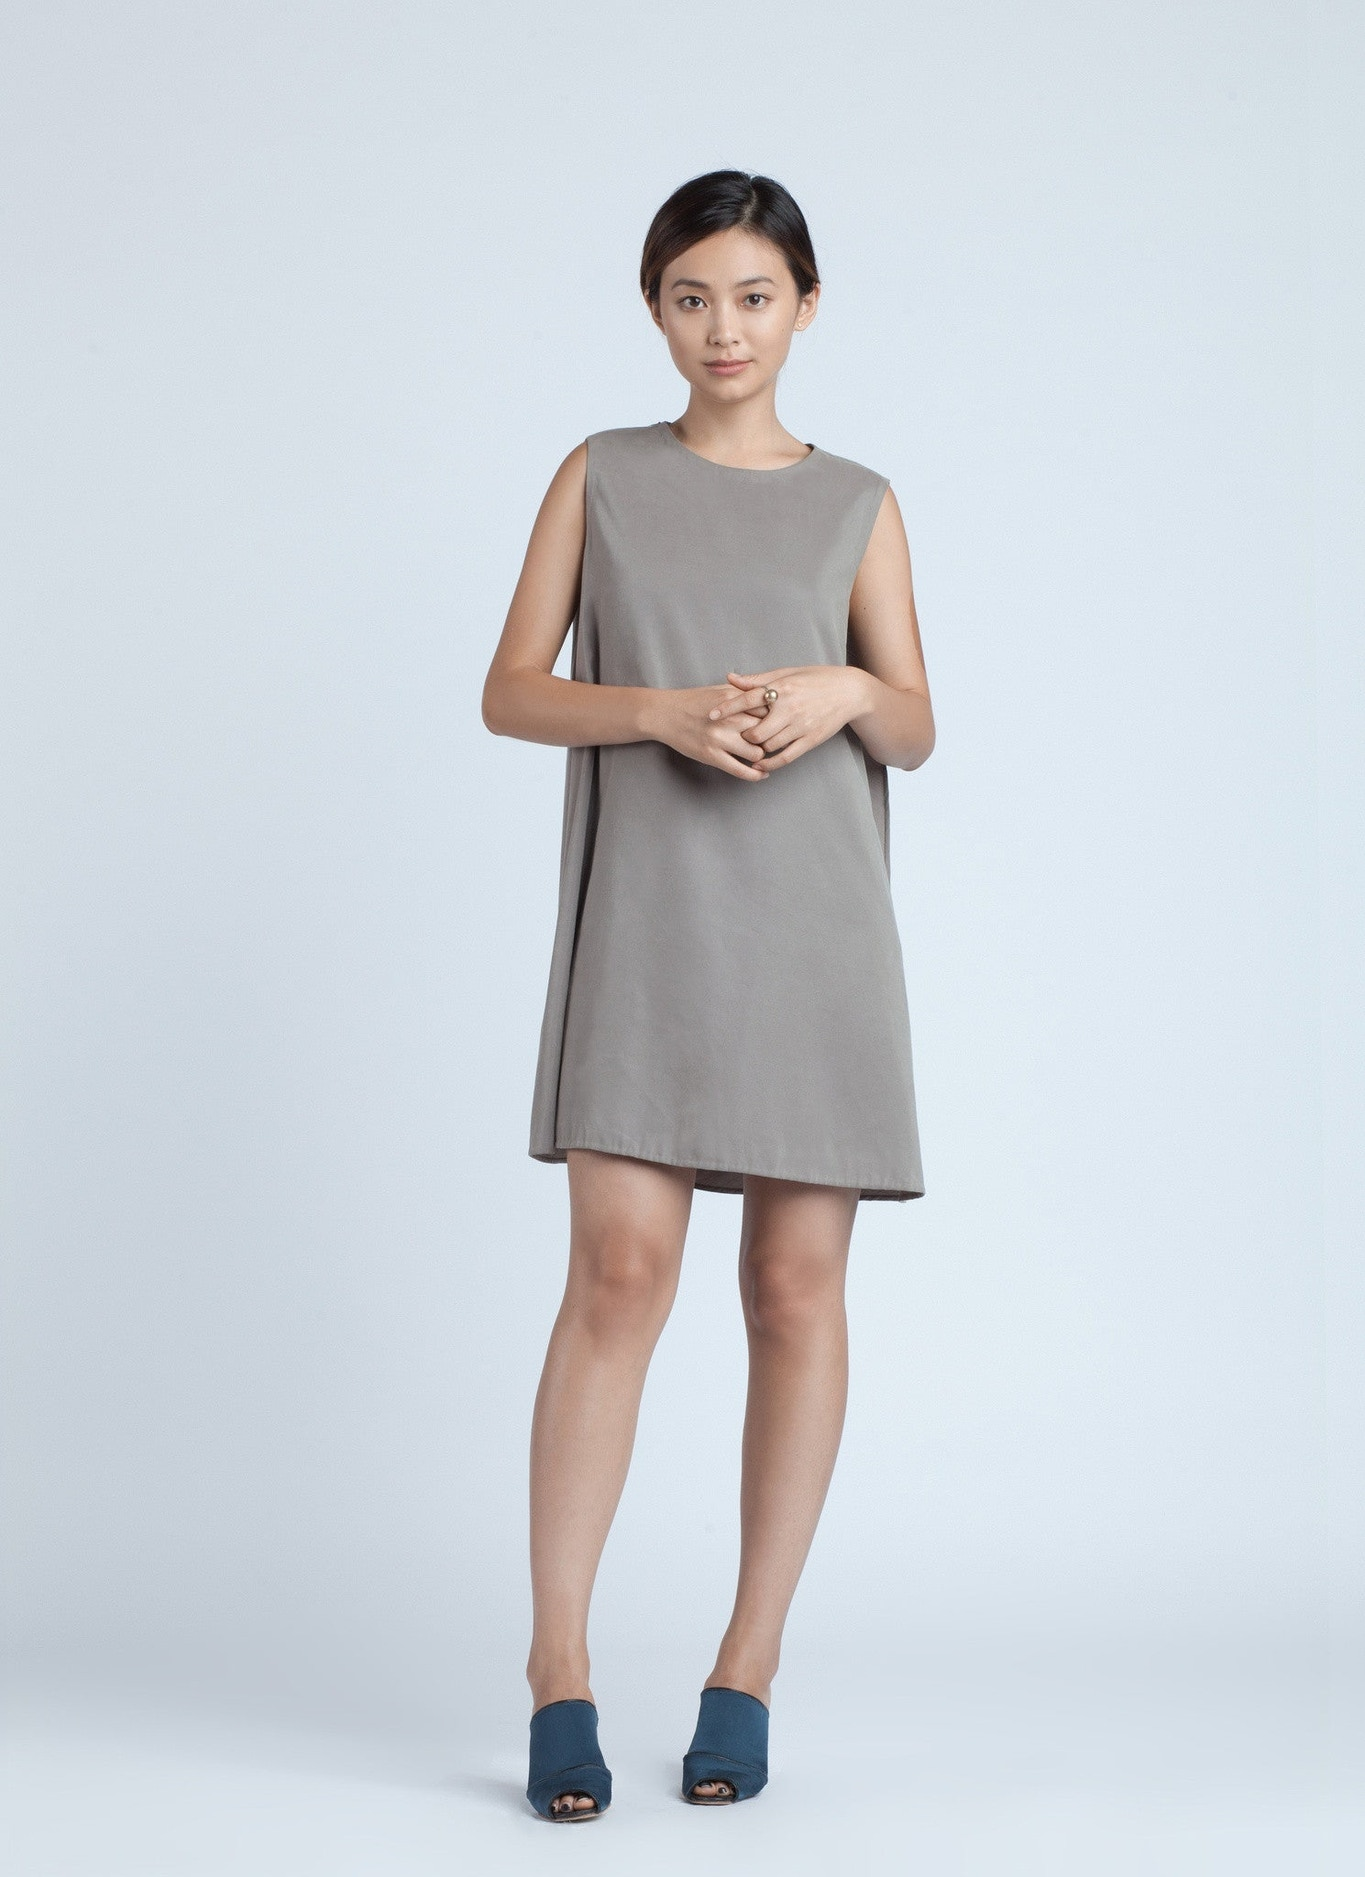 5b45e4ffdeed3 KAAREM - Piece of Air Sleeveless Overlap Dress - Grey